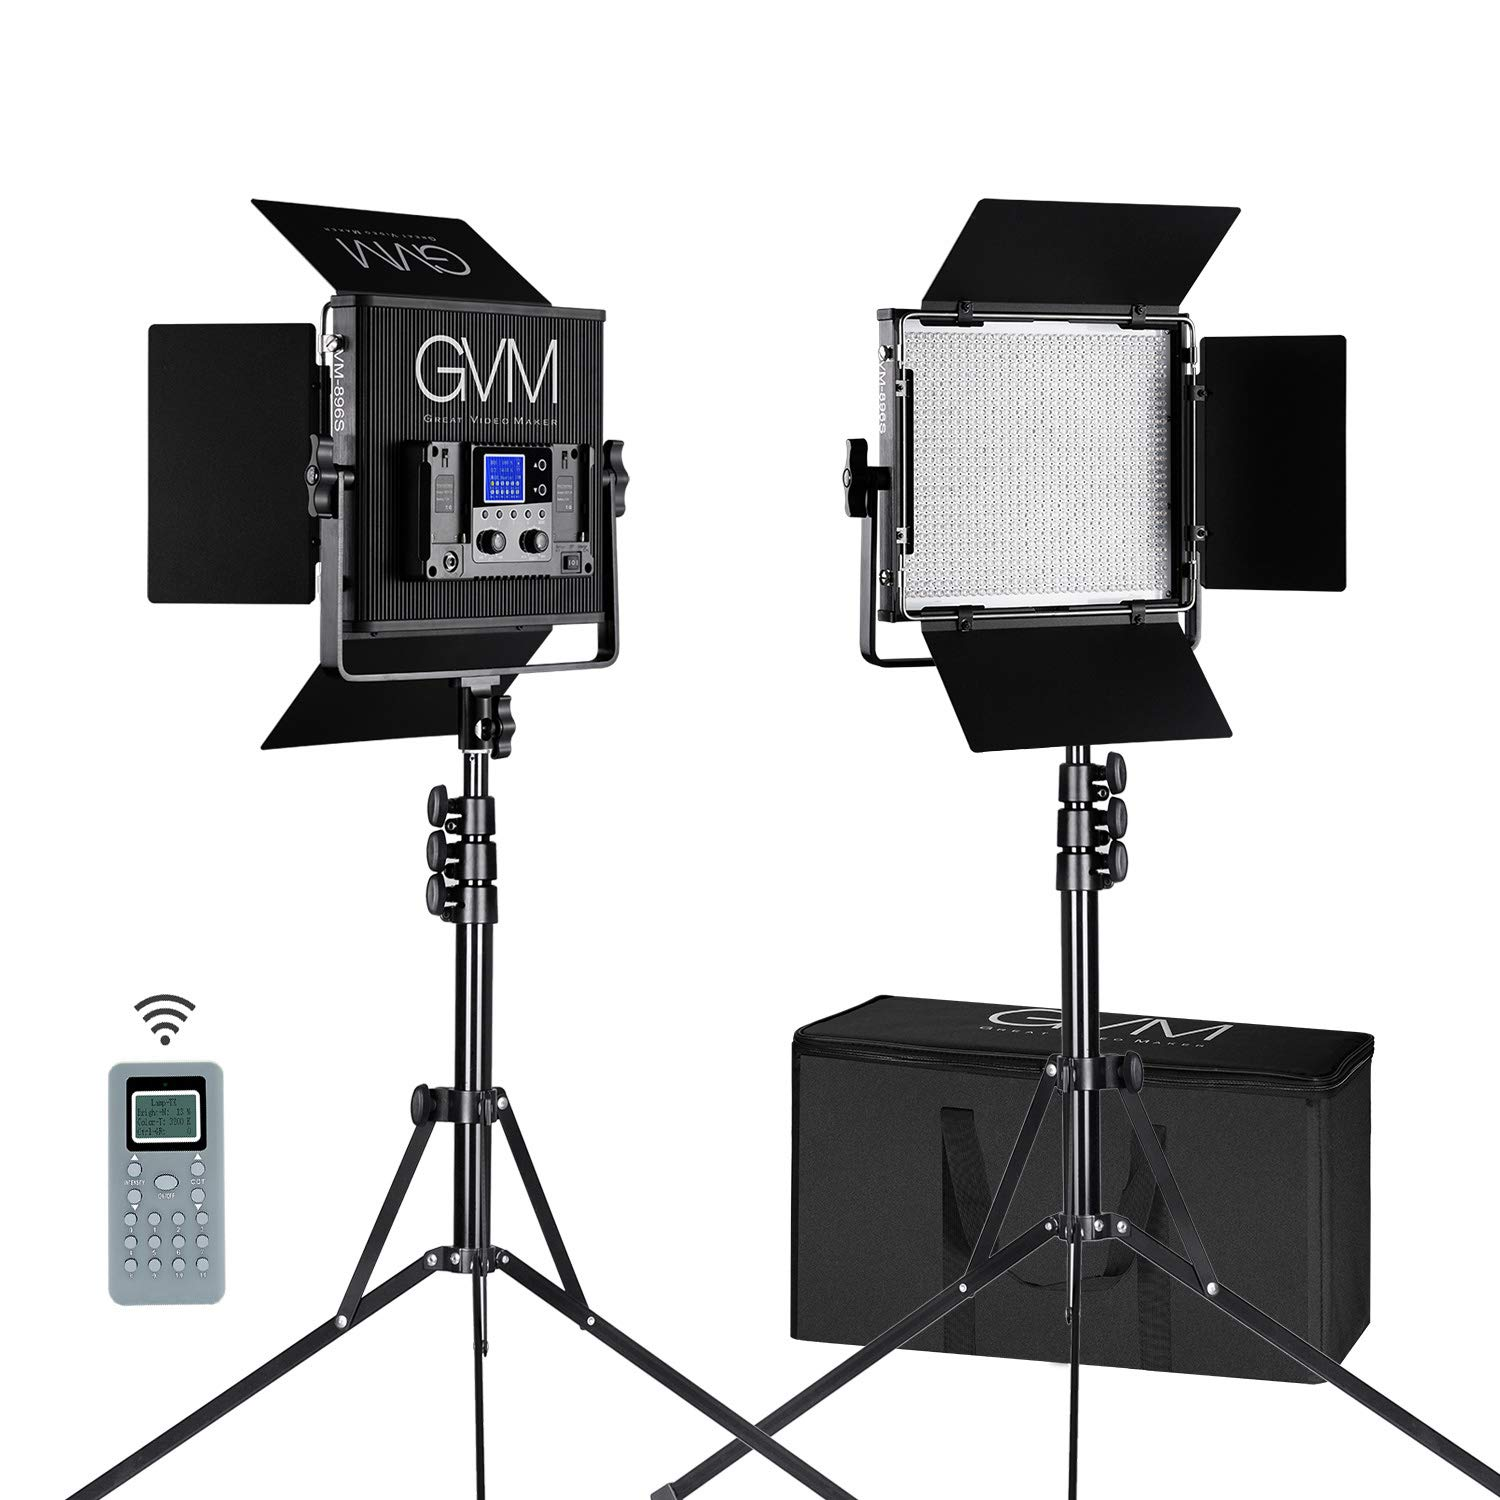 GVM 2 Packs 896 LED Video Light and Stand Lighting Kit Dimmable Bi-Color LED Video Light (2300K-6800K, CRI 97+) Aluminum Alloy with Wireless Controller for Studio, YouTube Video Photography